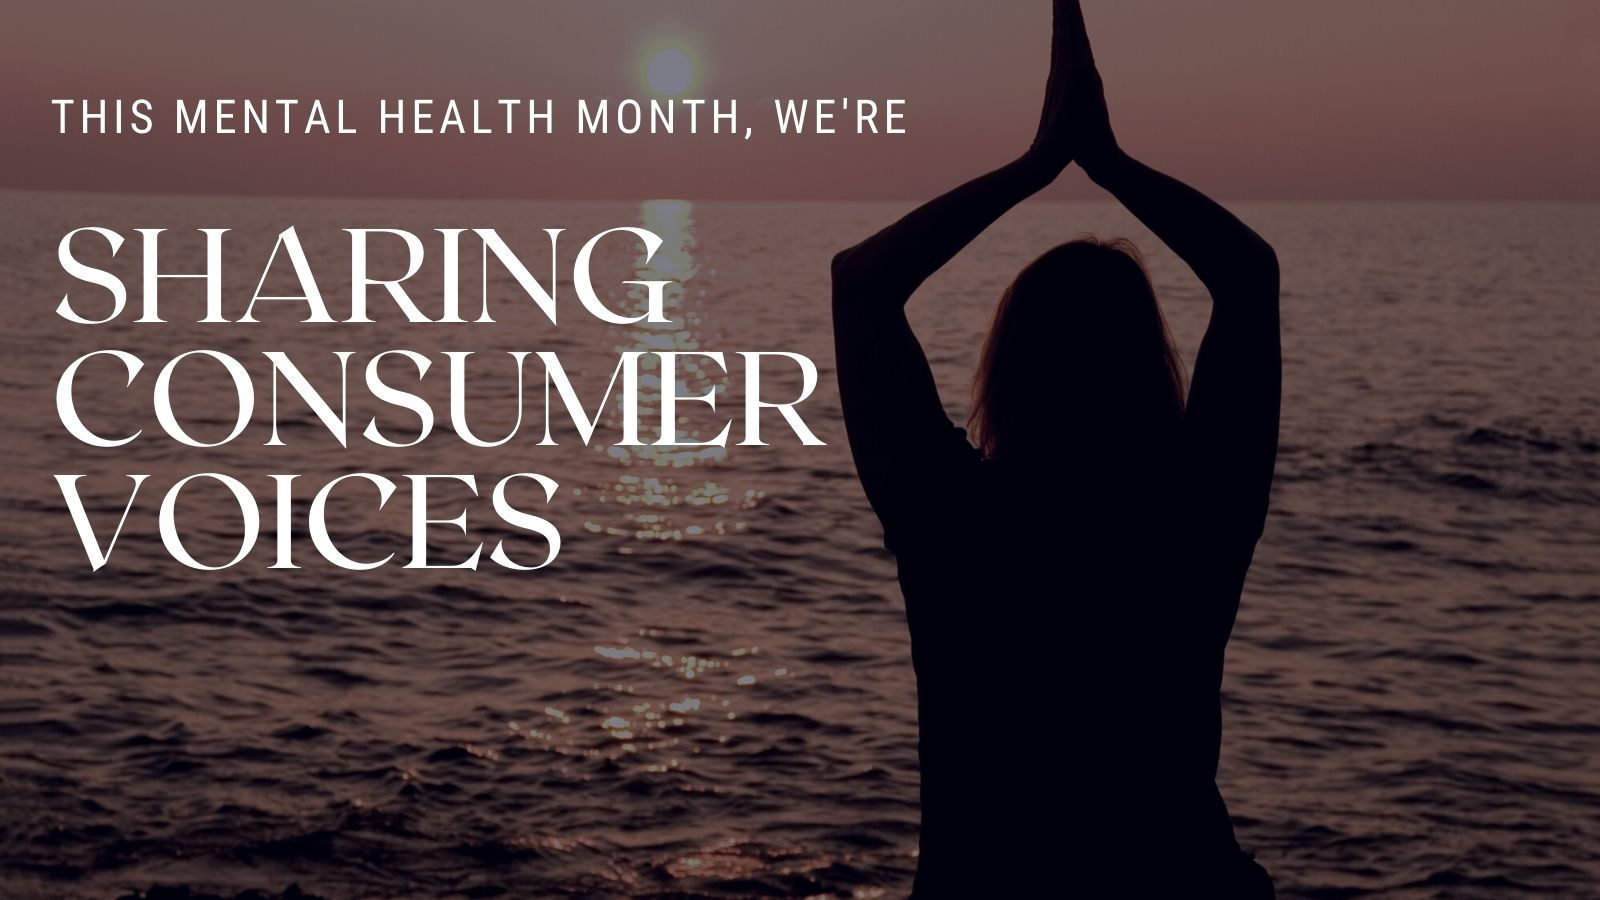 Sharing consumer voices. Mental health tips from consumers. Consumer mental health tips.